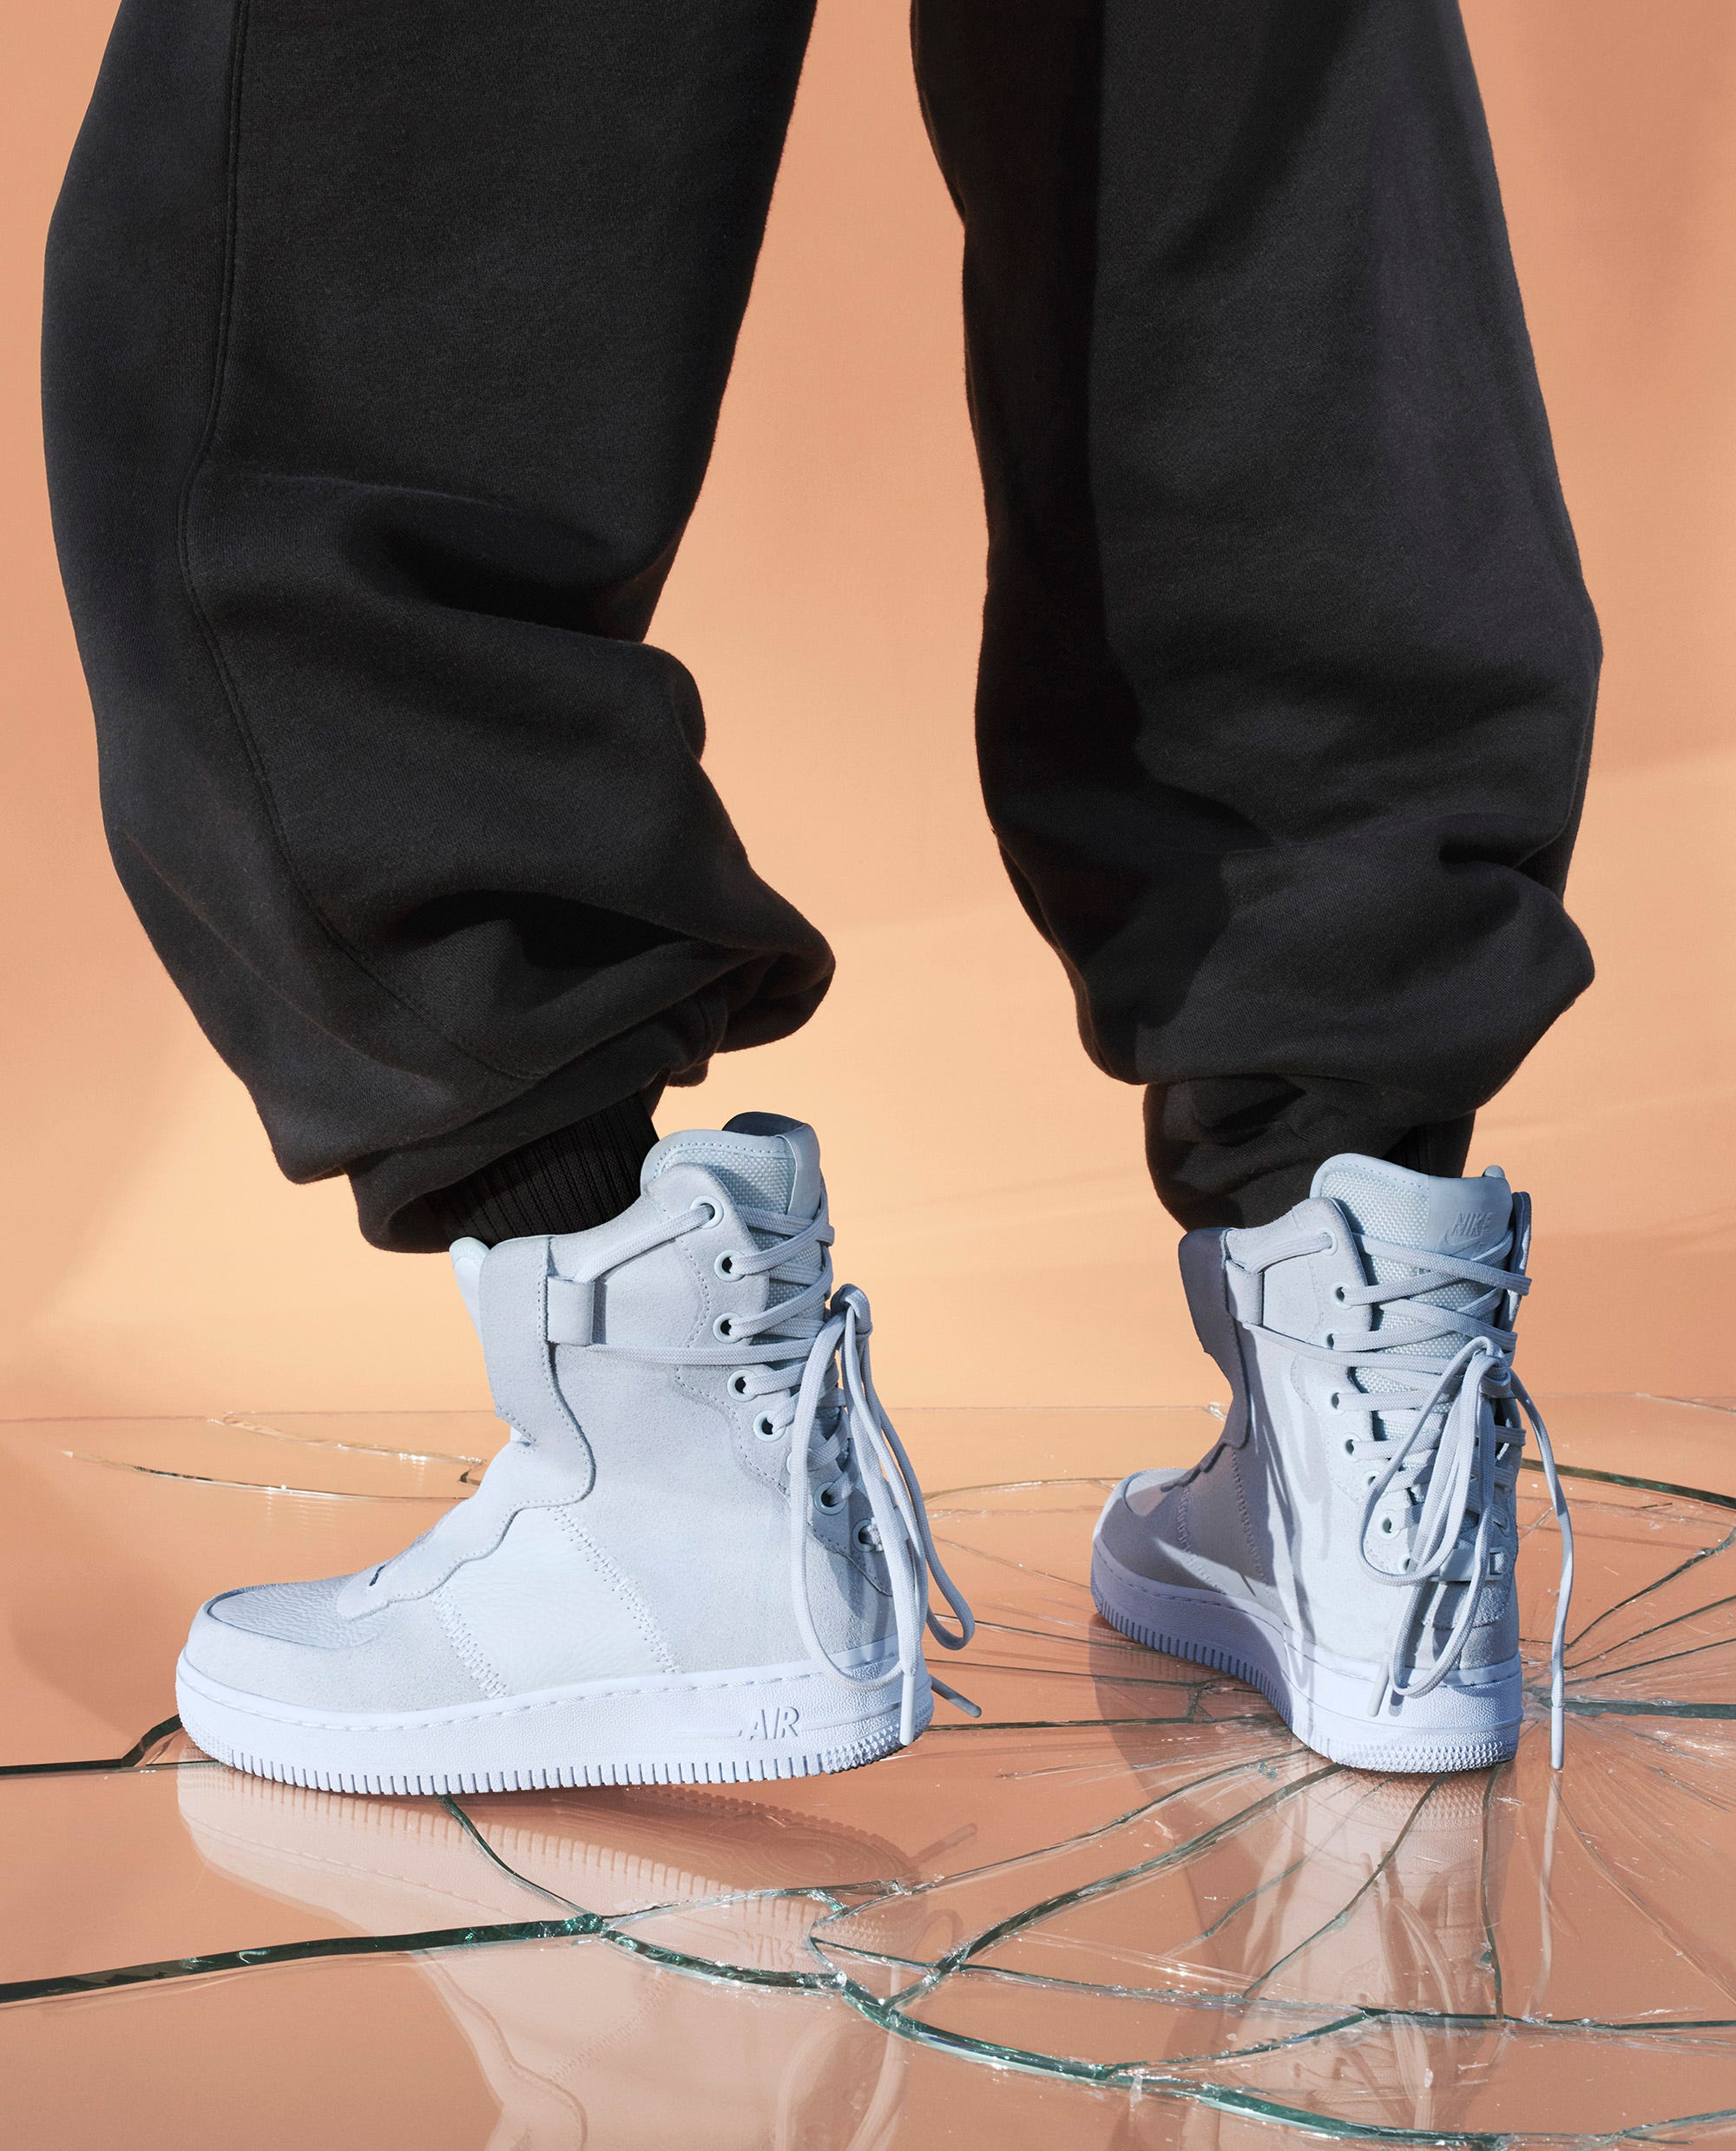 best sneakers acbbd e036e Nike 1 Reimagined New Collection Air Force Ones